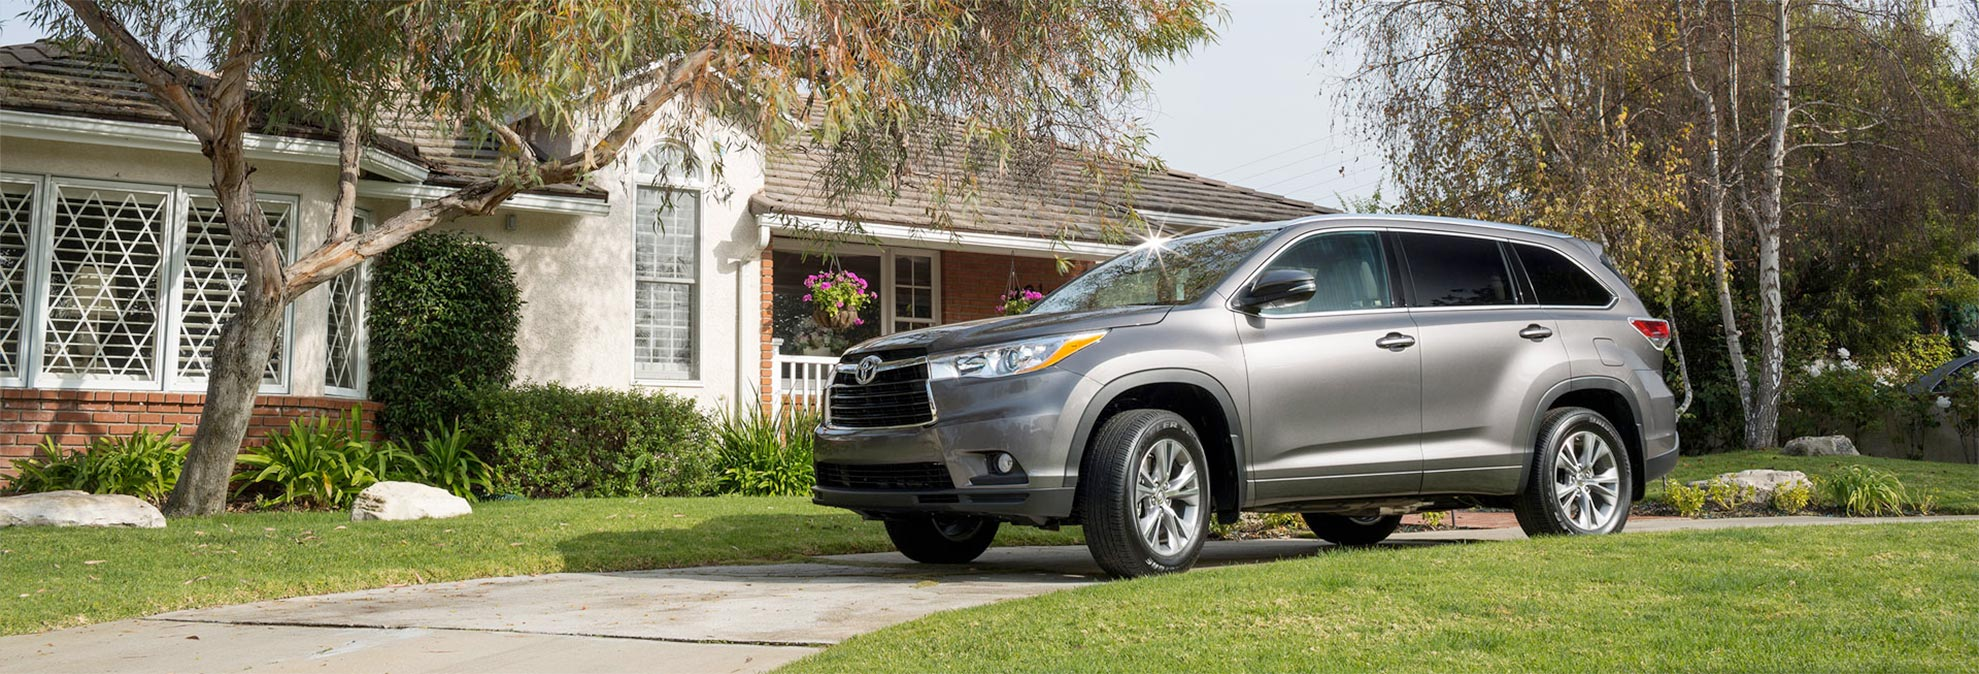 Honda Pilot vs Toyota Highlander: Which is Best For Me? - Consumer Reports